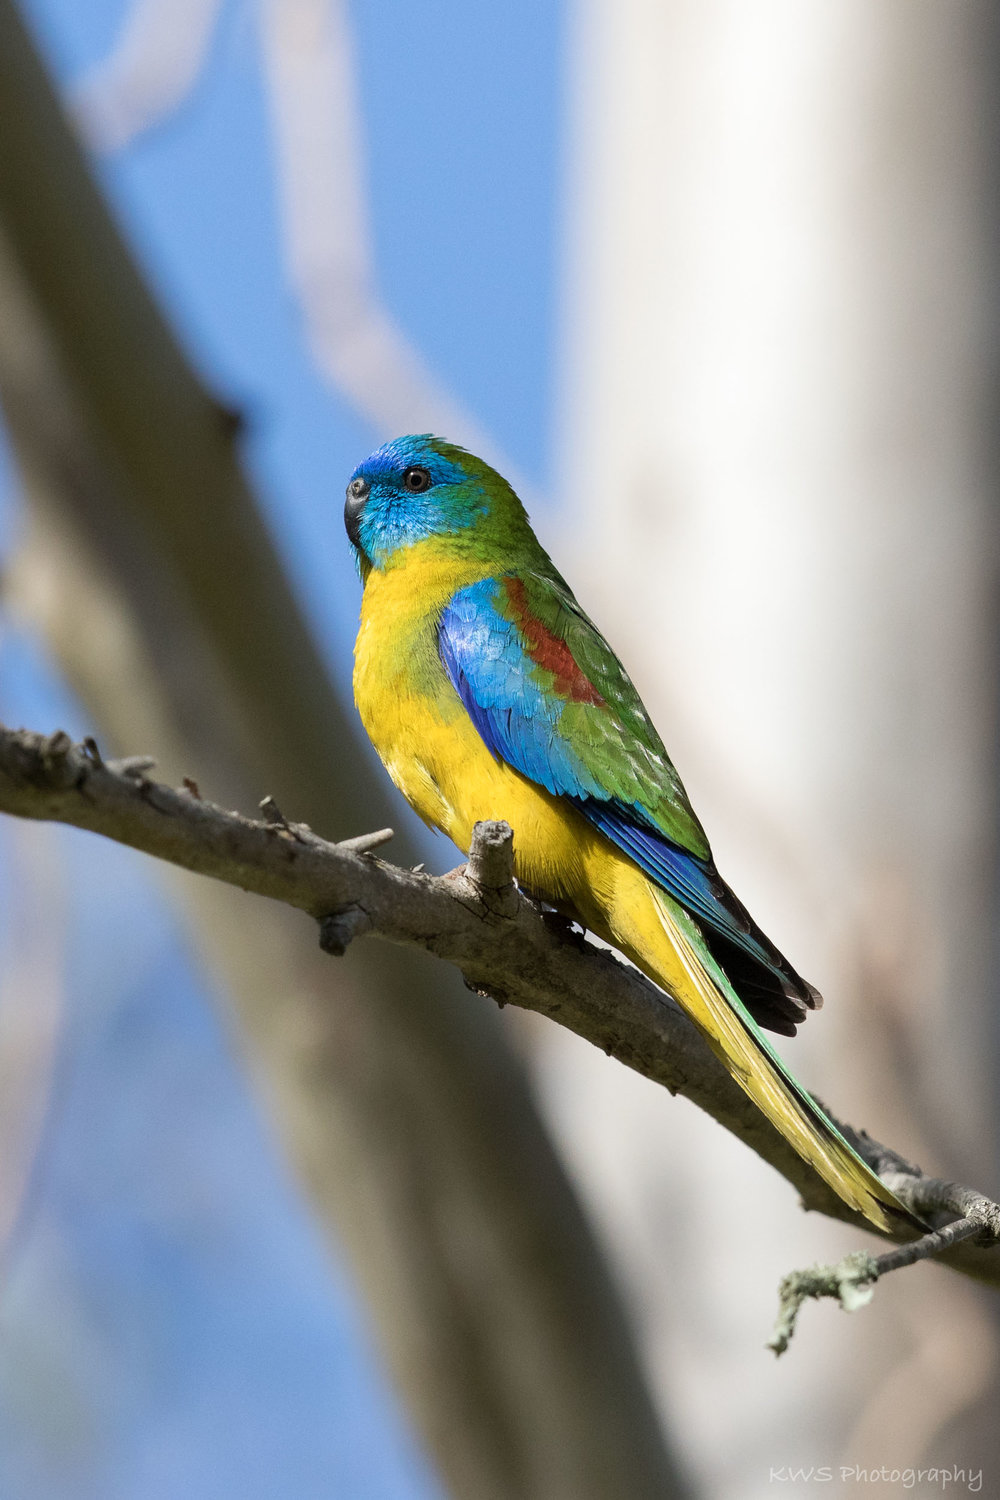 Male Turquoise Parrot